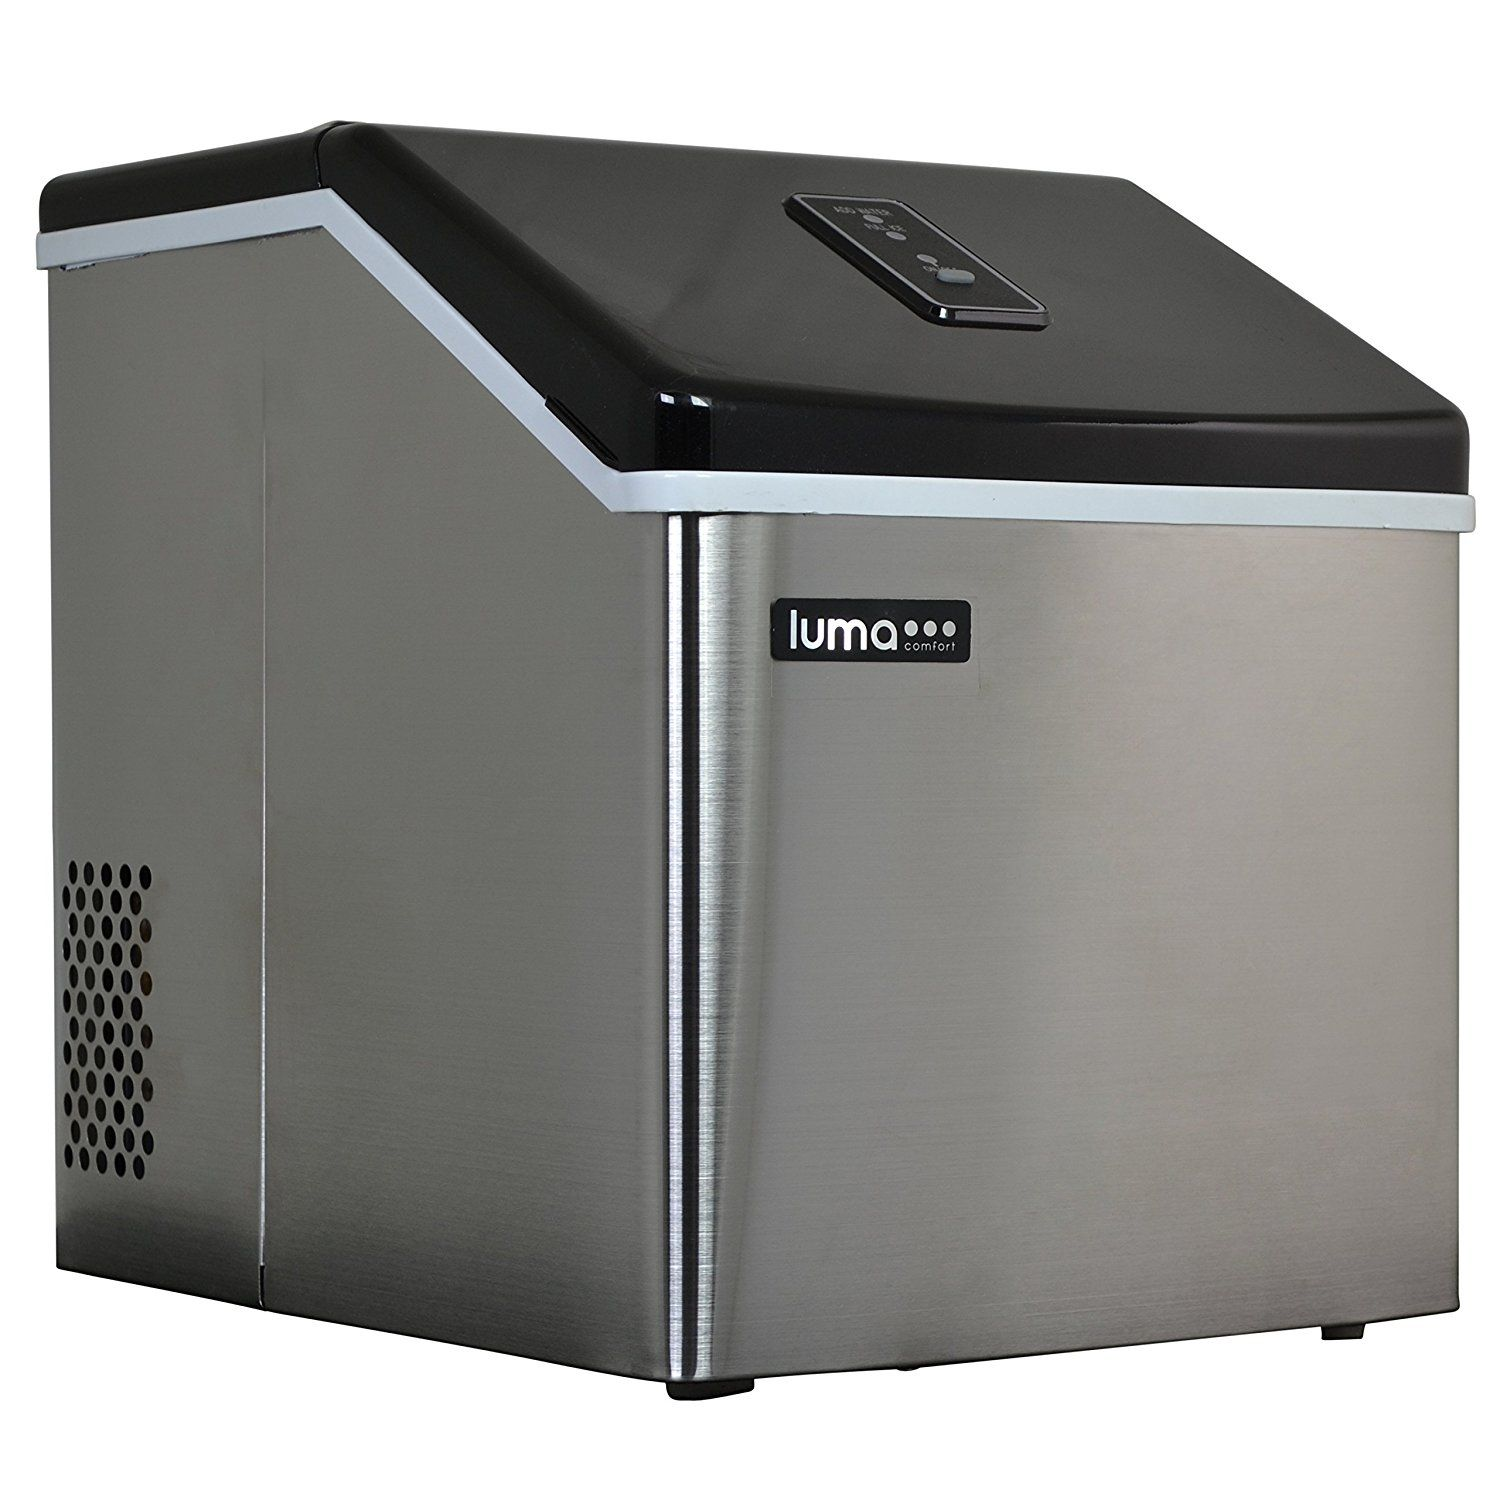 Luma Comfort Im200ss Portable Clear Ice Maker 28 Pound This Is An Amazon Affiliate Link Visit The Image Link Portable Ice Maker Ice Maker Machine Ice Maker